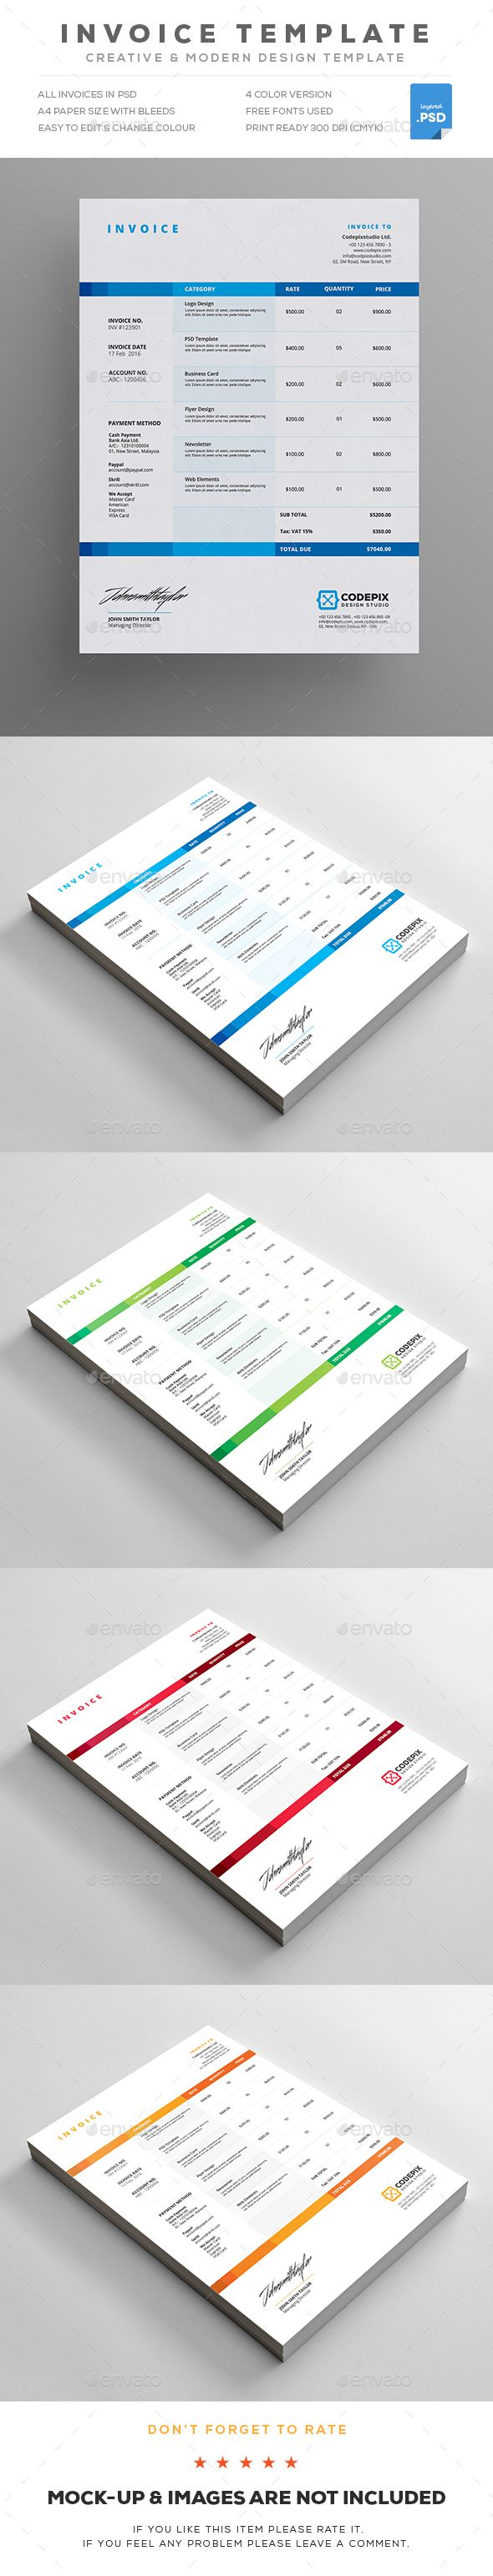 sample invoice for services rendered template example agenda templatesample best images about proposal